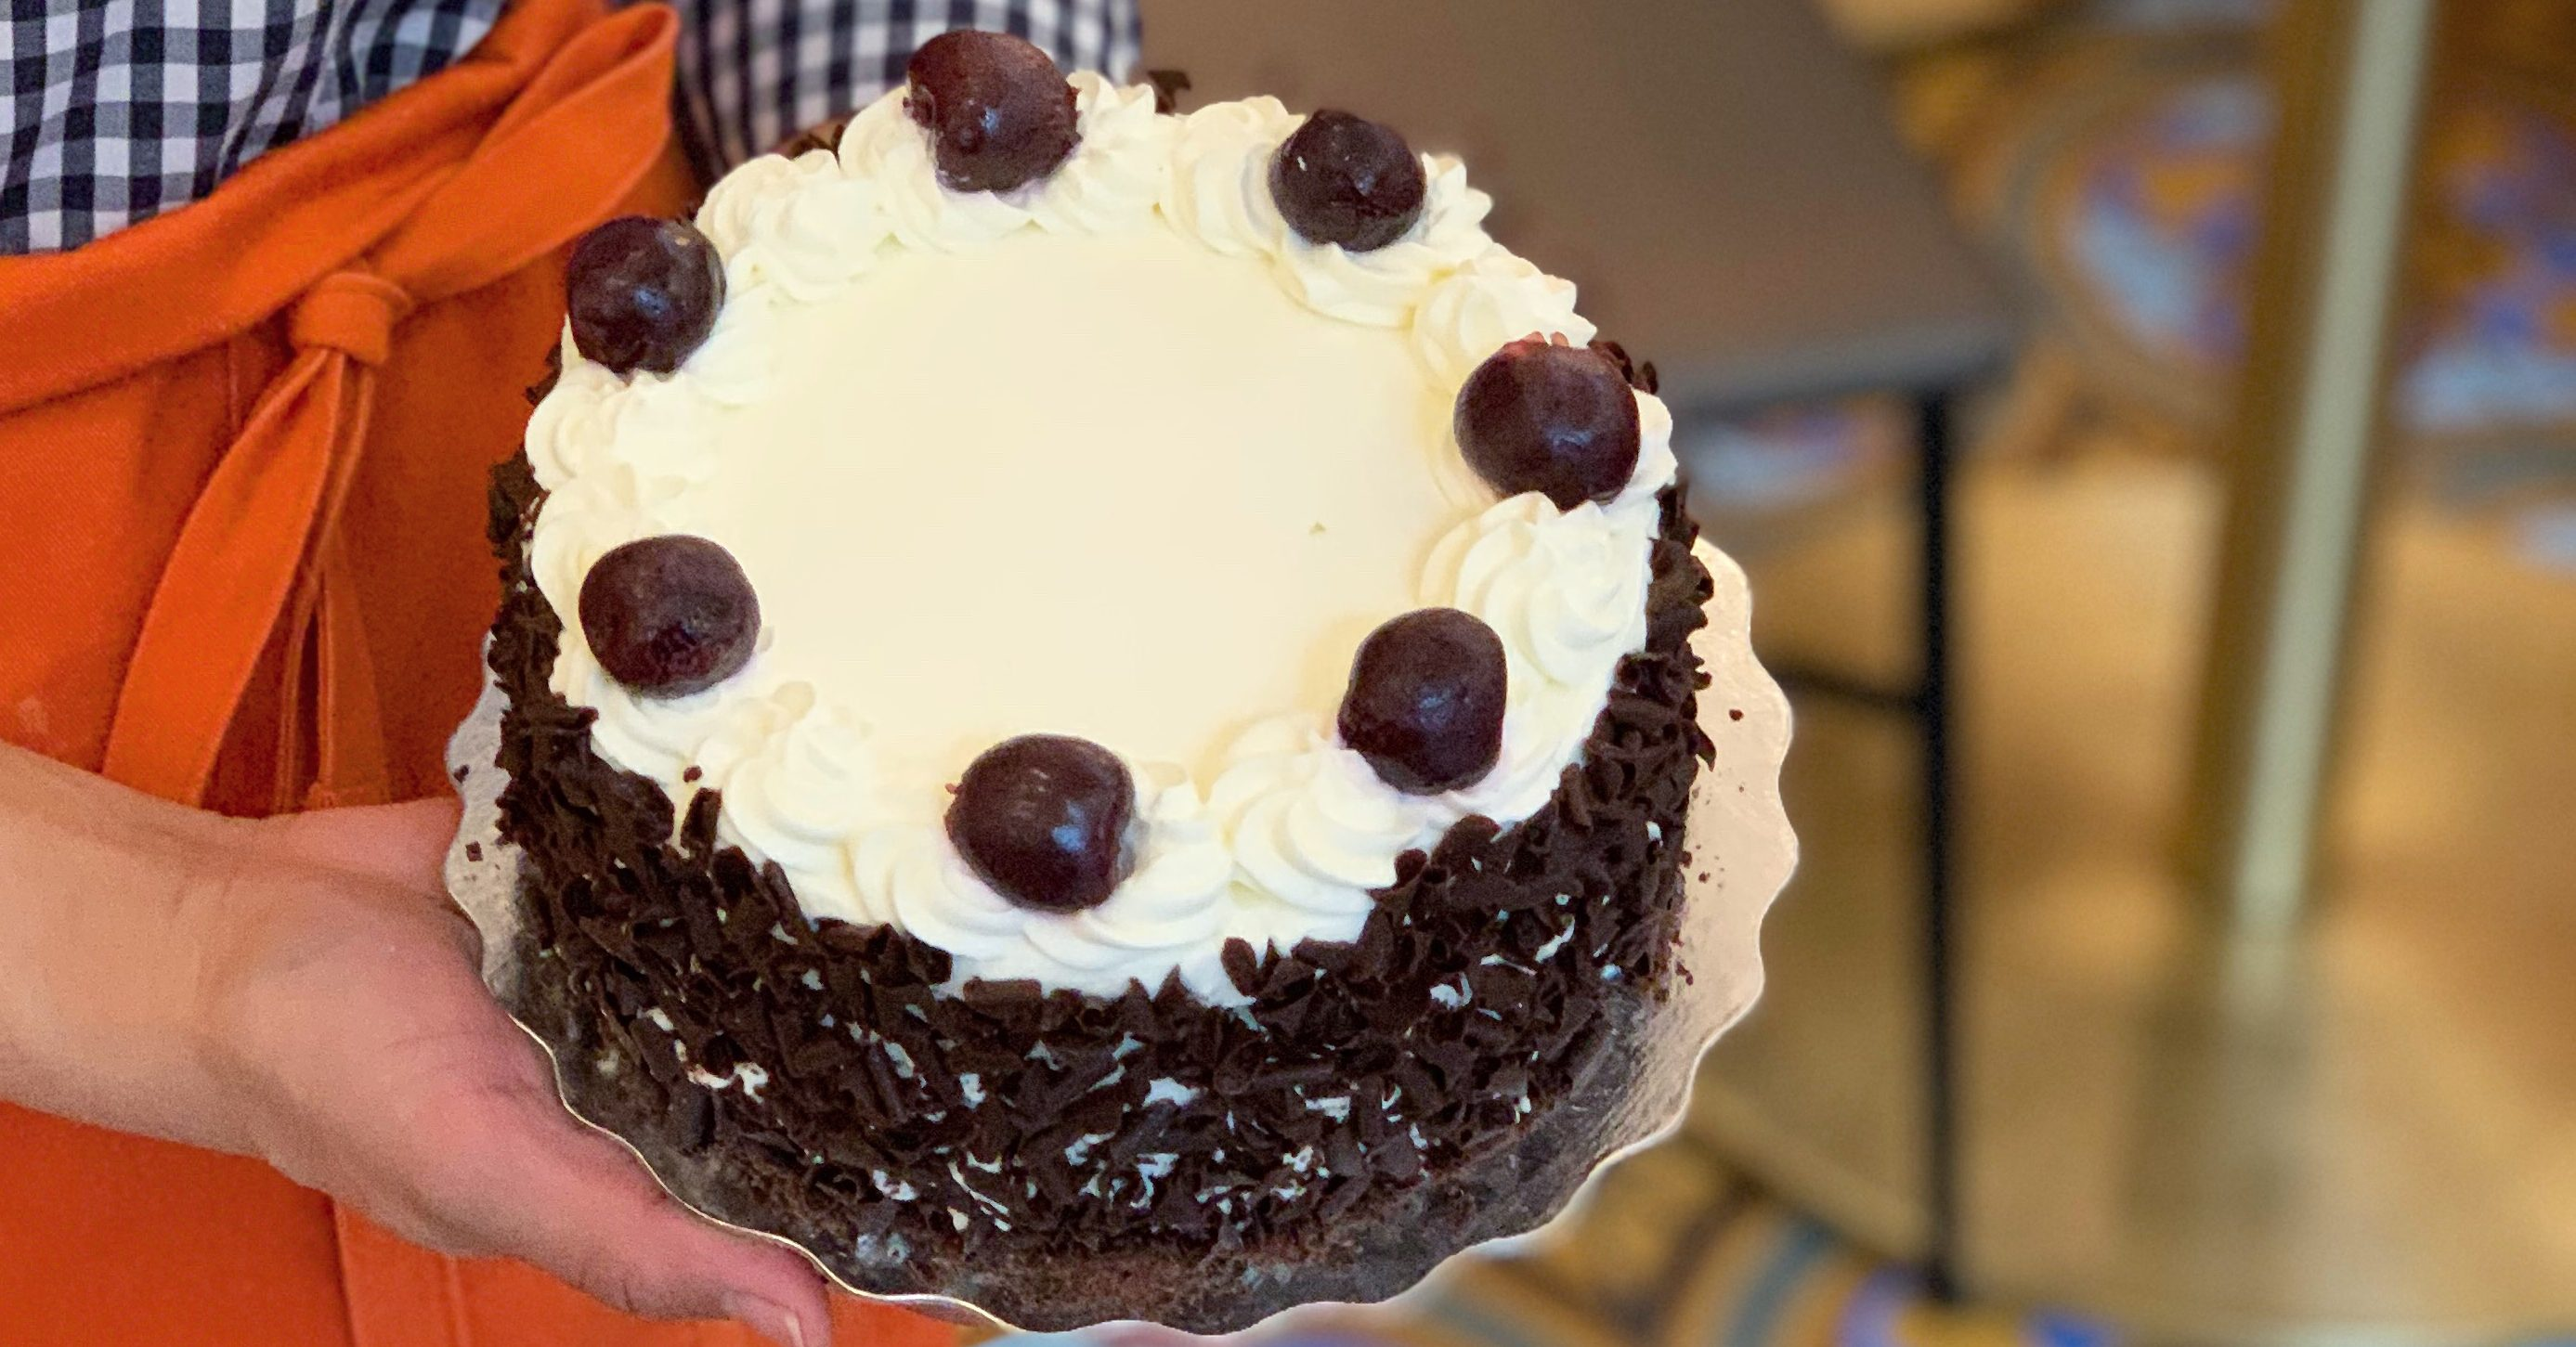 READ: Happy National Black Forest Cake Day!